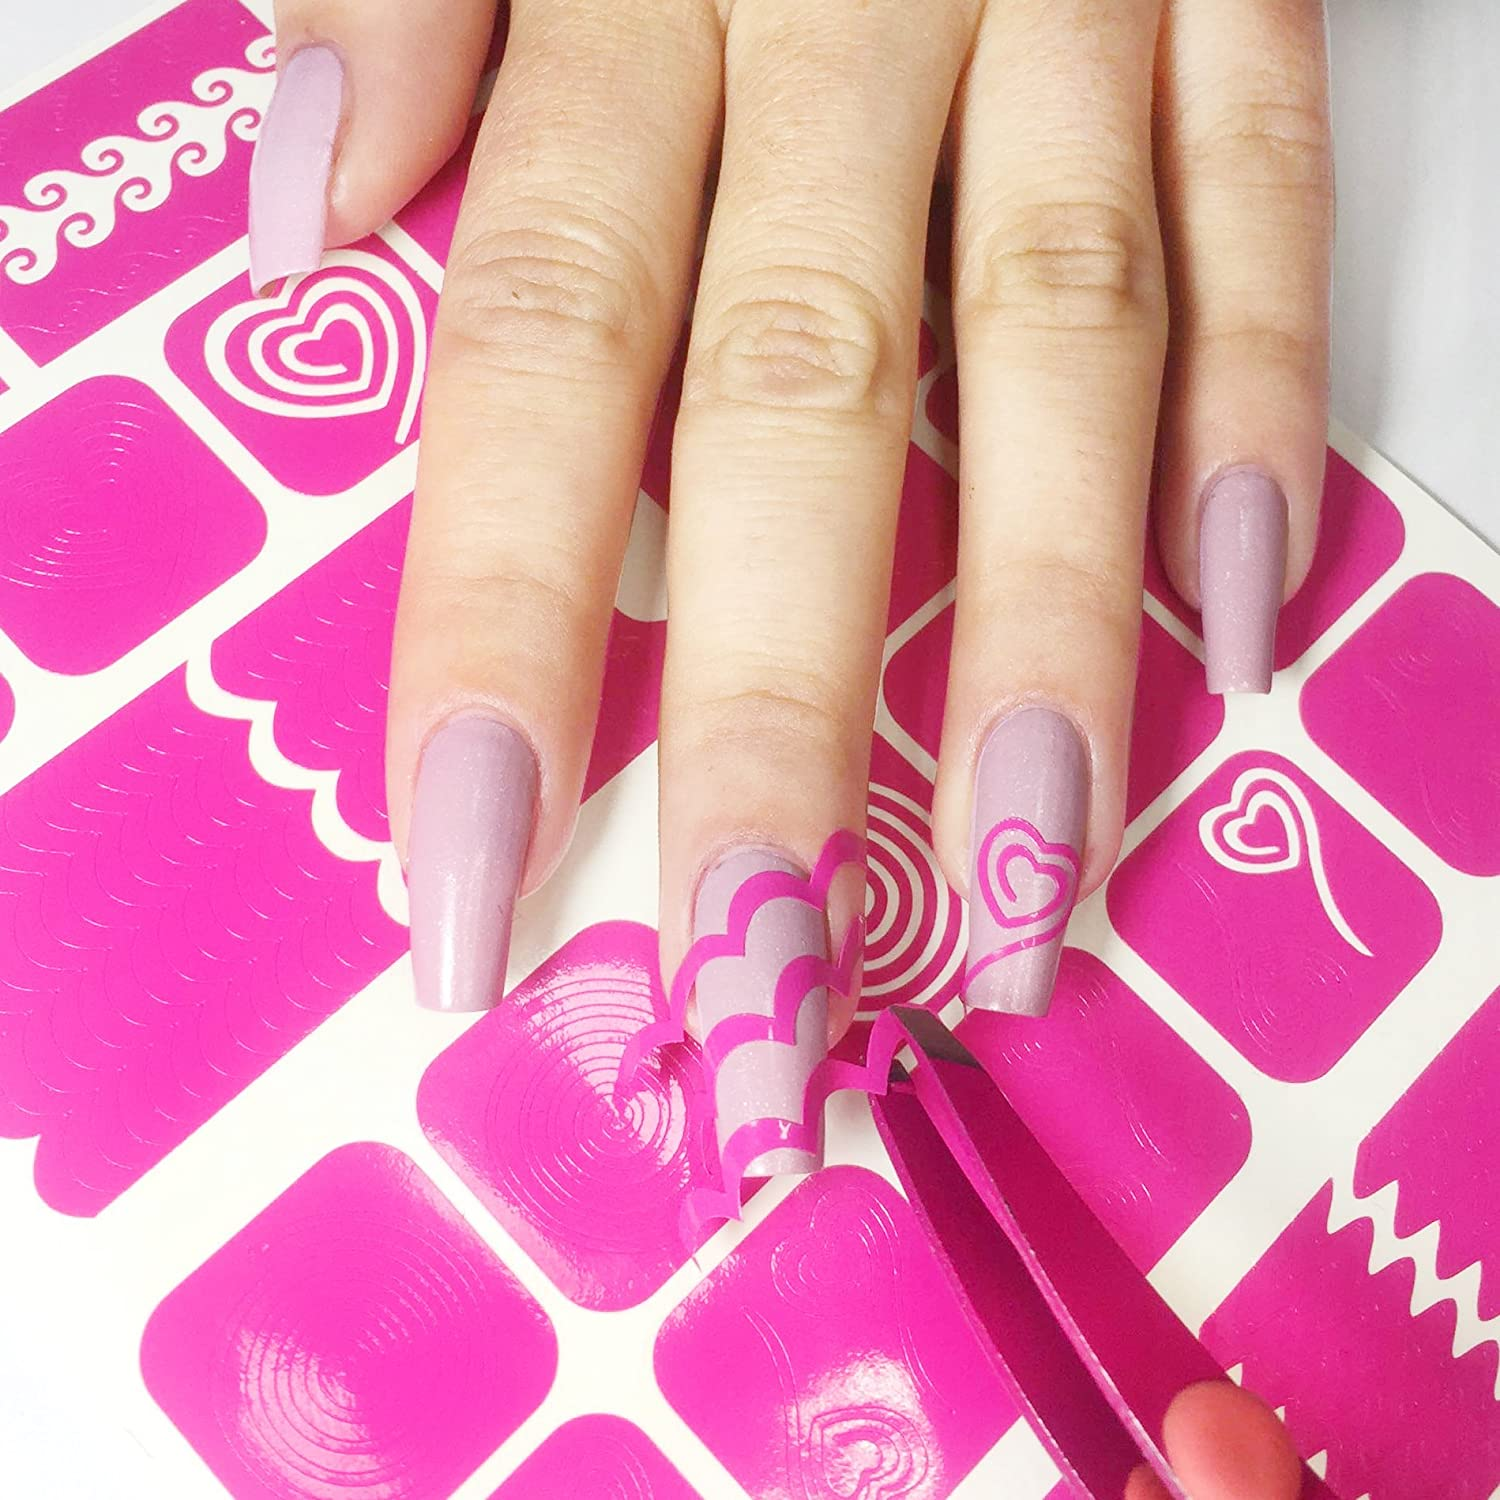 Nail Art Stencils Stickers Vinyl Swirl Collection 433 Guides Kit